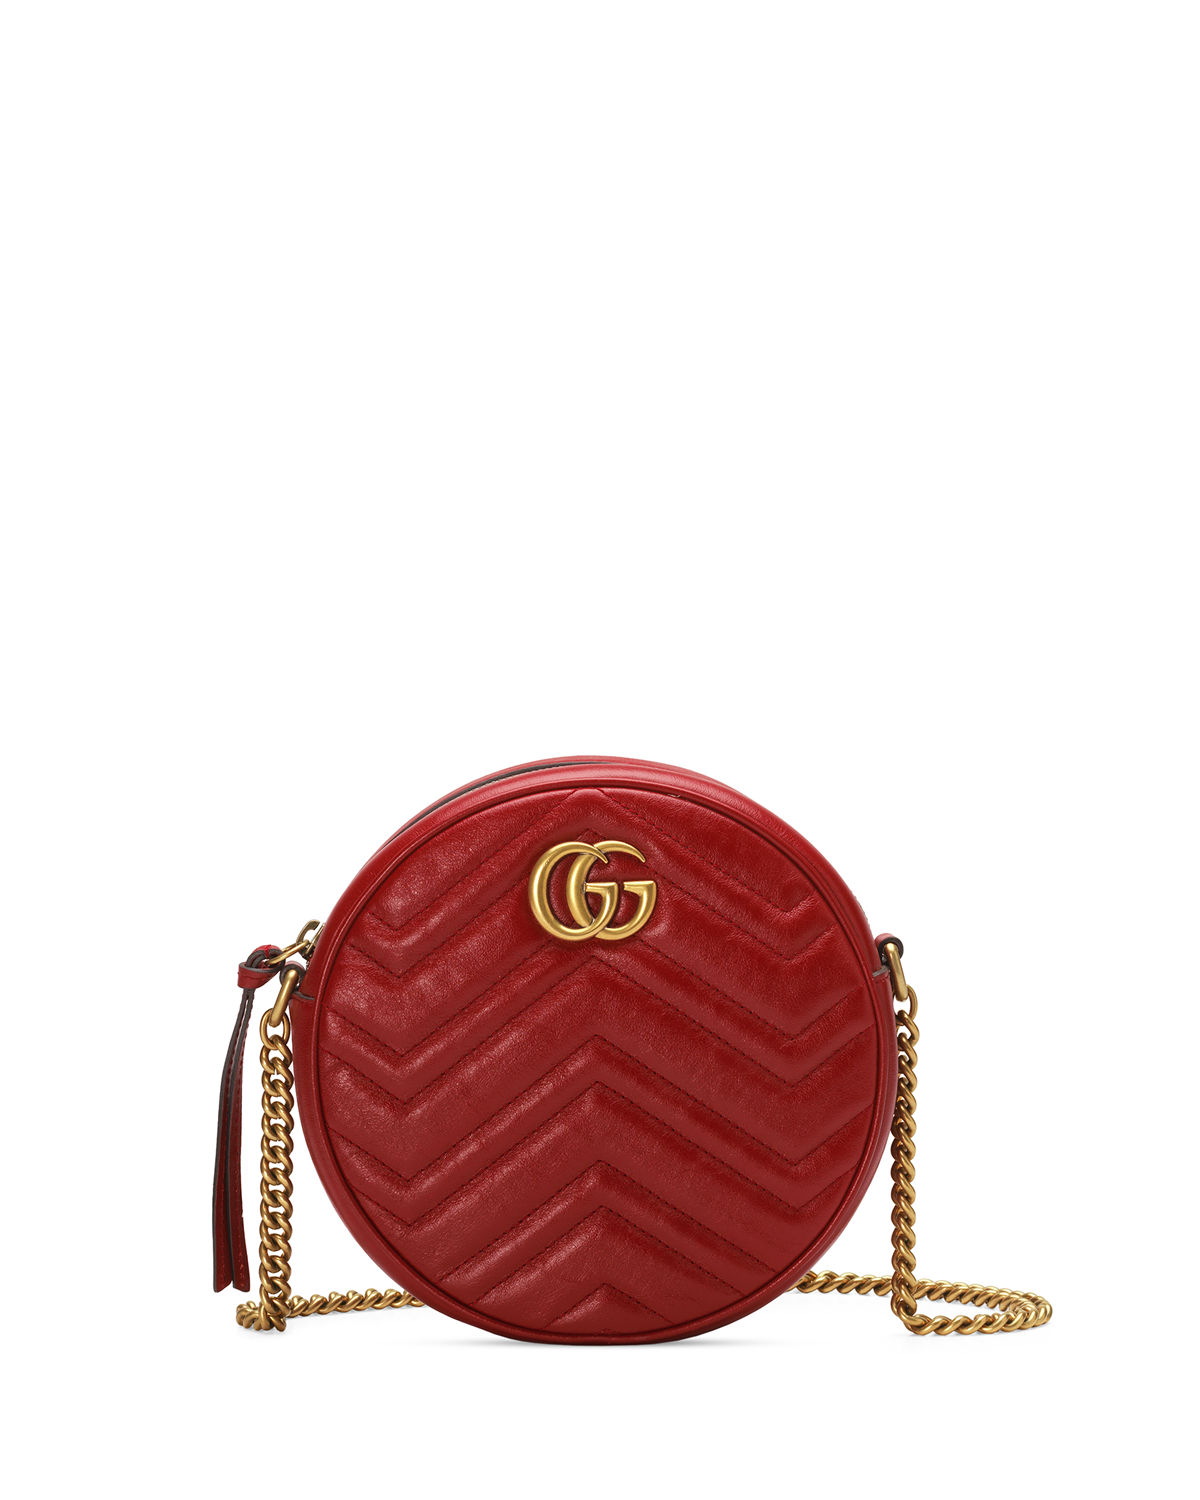 9e1d26c3b4f4 Gucci Gg Marmont Mini Round Chevron Crossbody Bag In Red